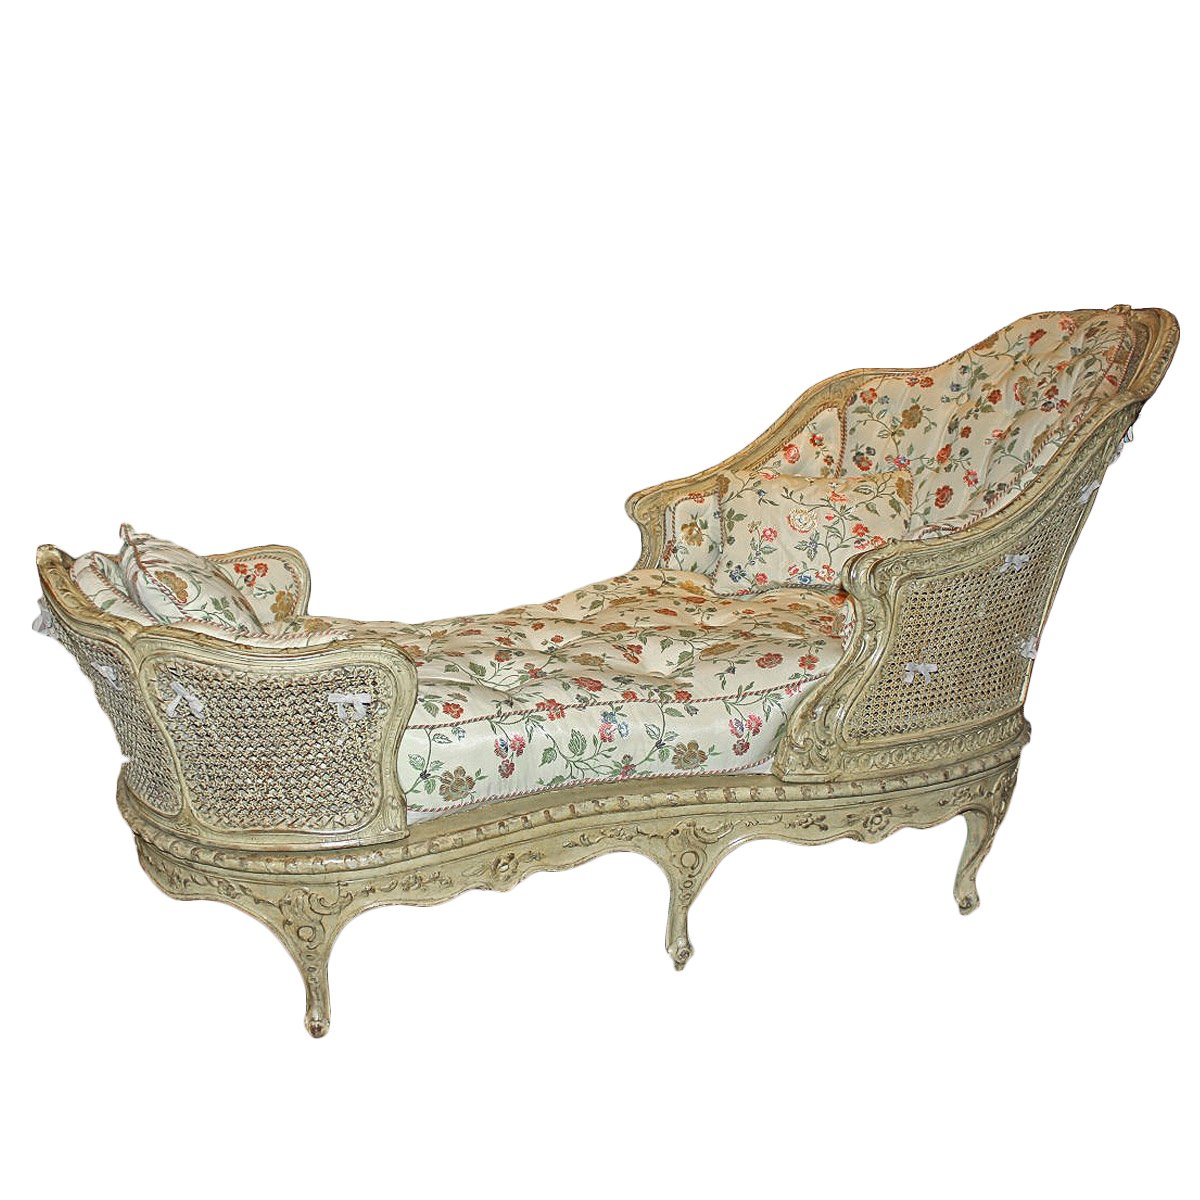 chaise longue cann e louis xv xviiie si cle. Black Bedroom Furniture Sets. Home Design Ideas